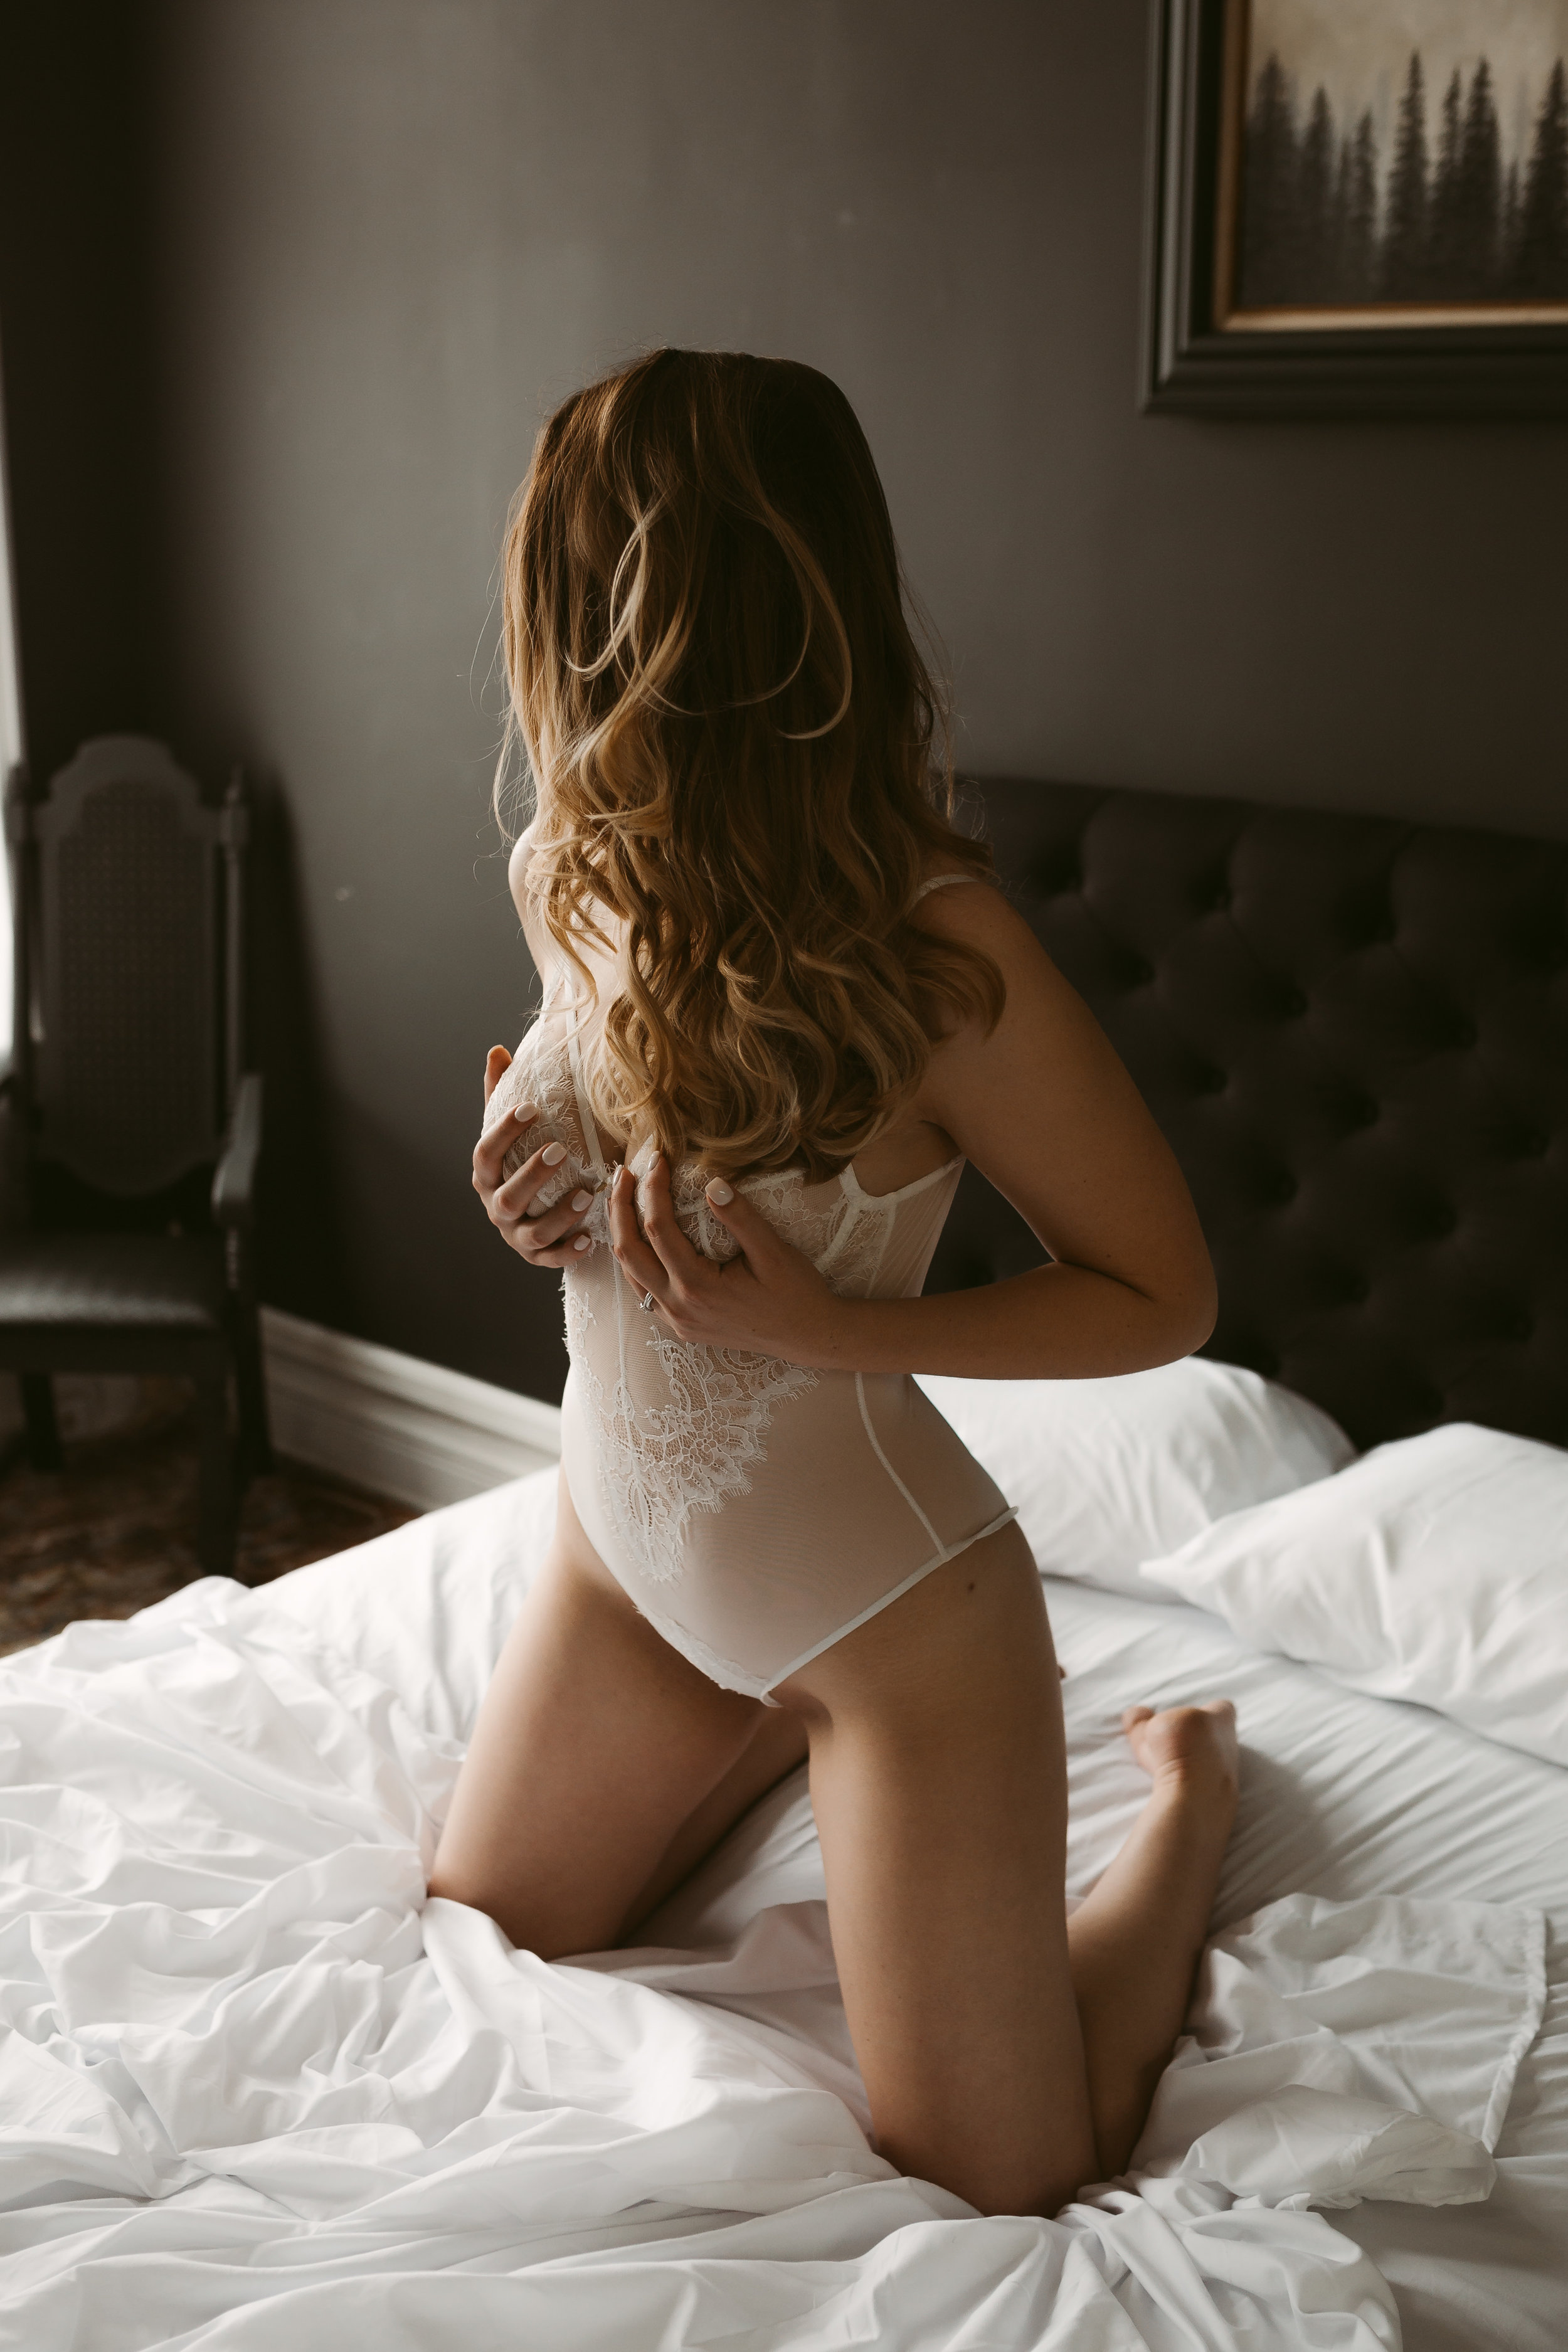 Michigan_Boudoir_Photography_Butterfly_Boudoir007.JPG